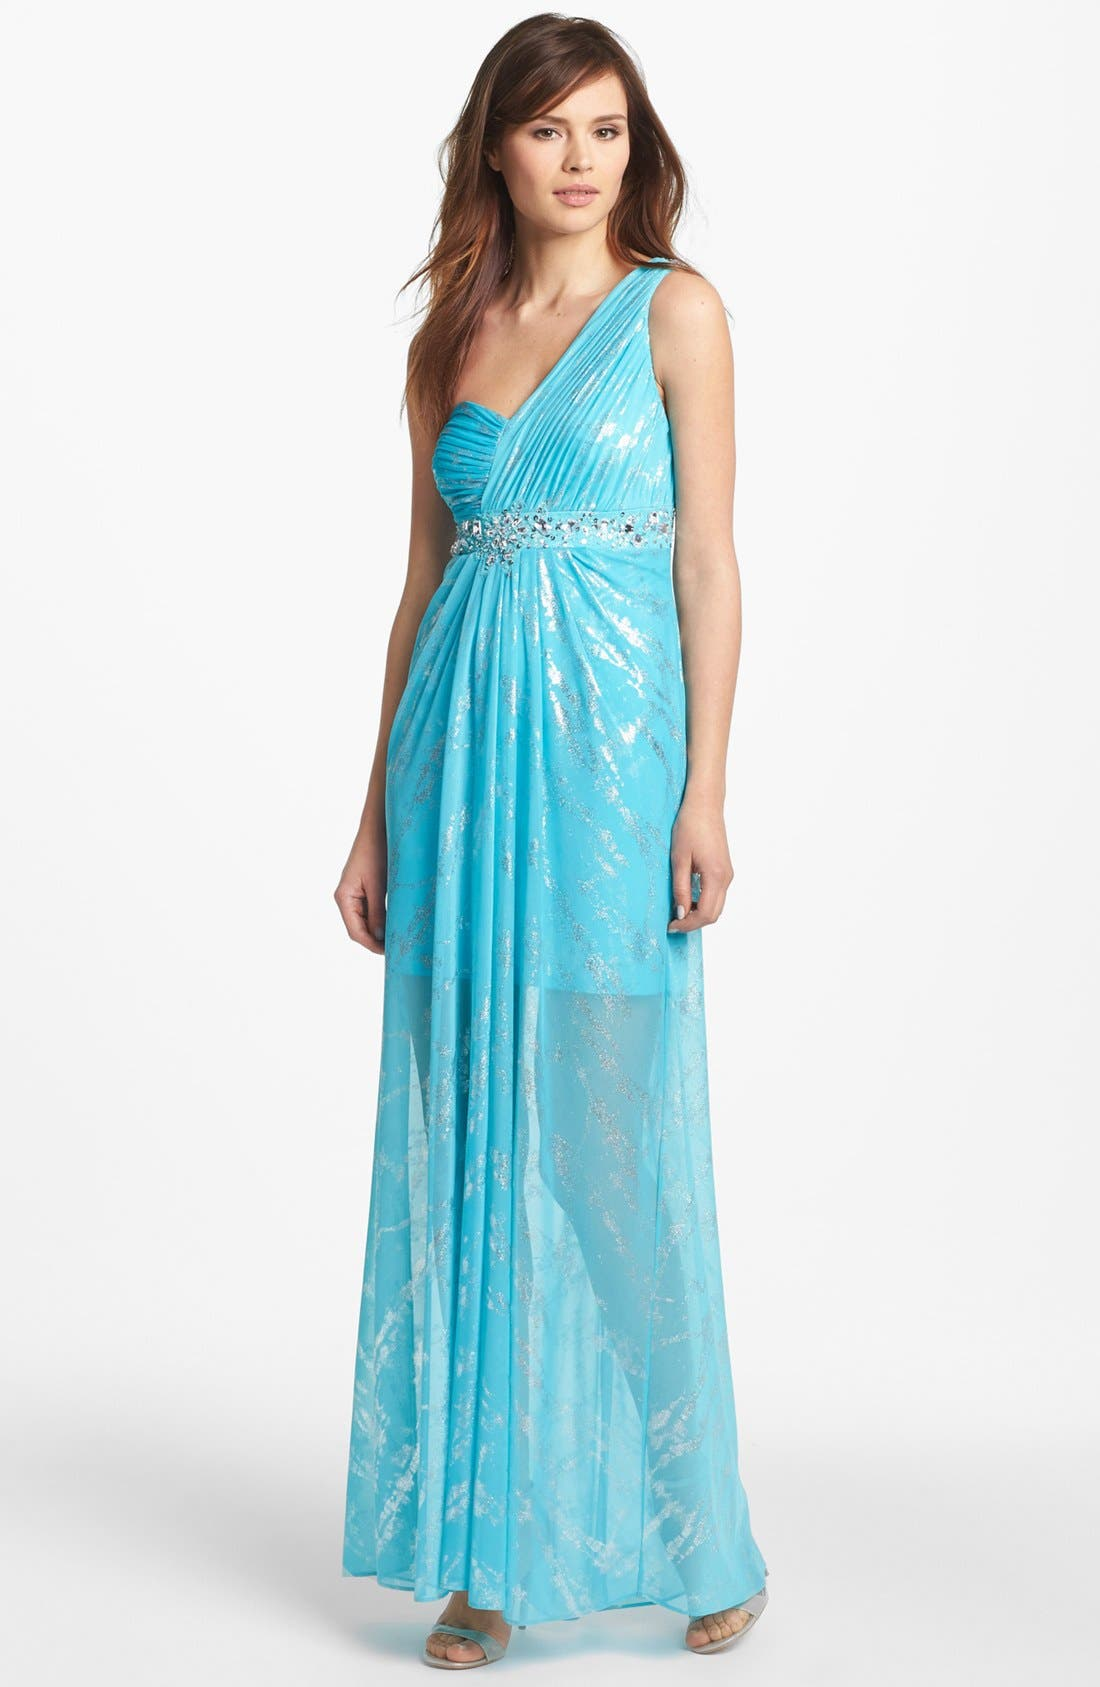 Main Image - Hailey by Adrianna Embellished One Shoulder Foiled Chiffon Gown